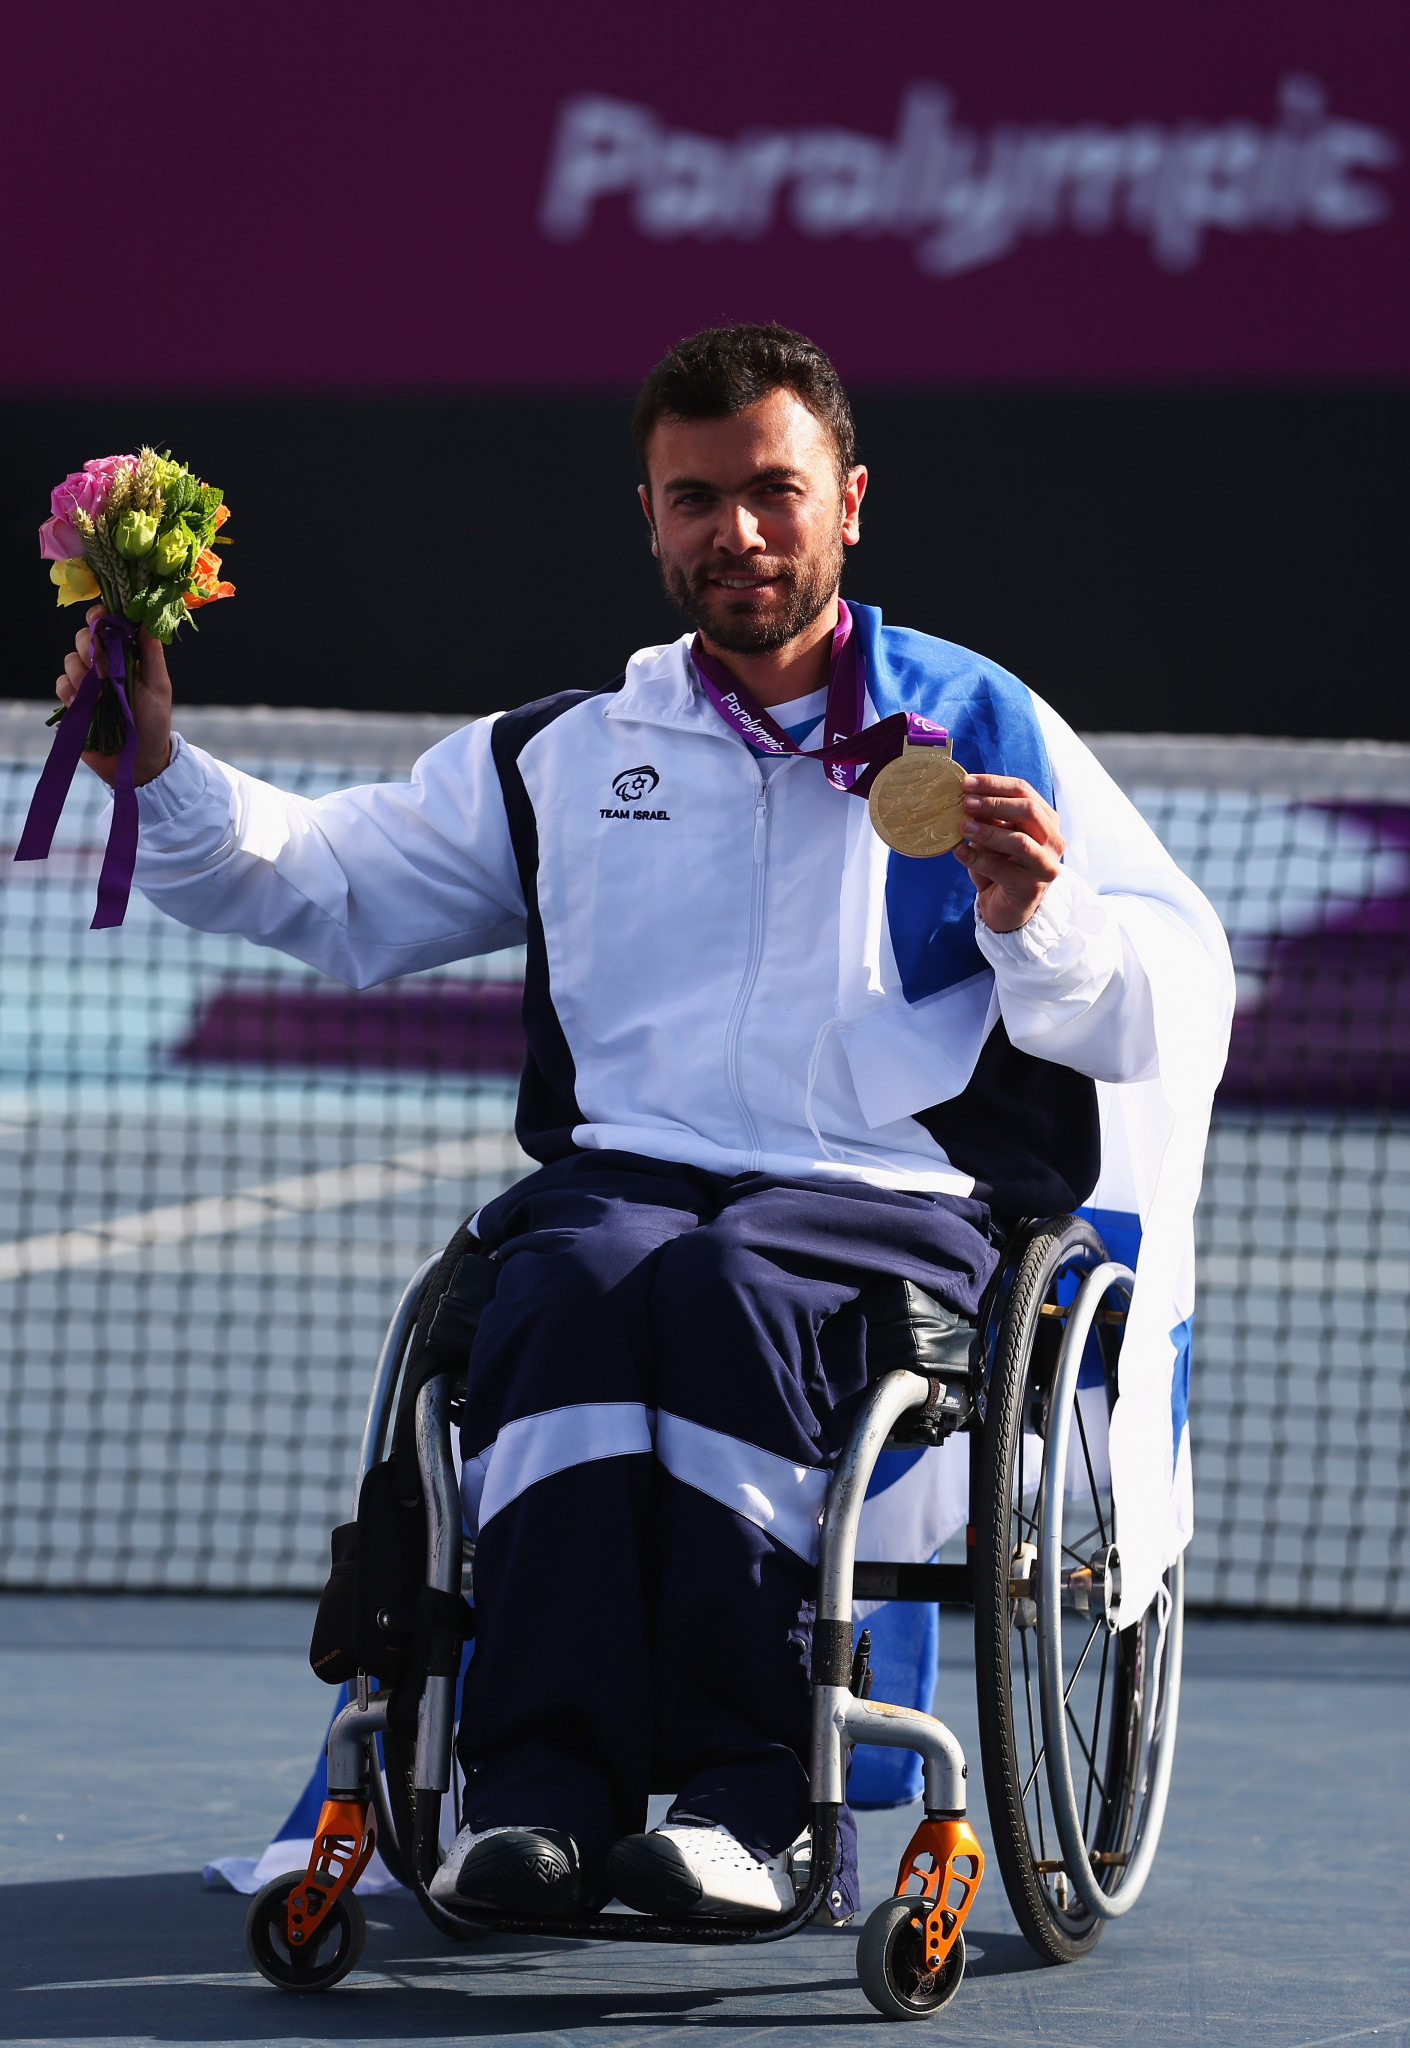 Israel's last Paralympic gold medal came in 2012 when Noam Gershony took gold in the quad tennis ©Getty Images